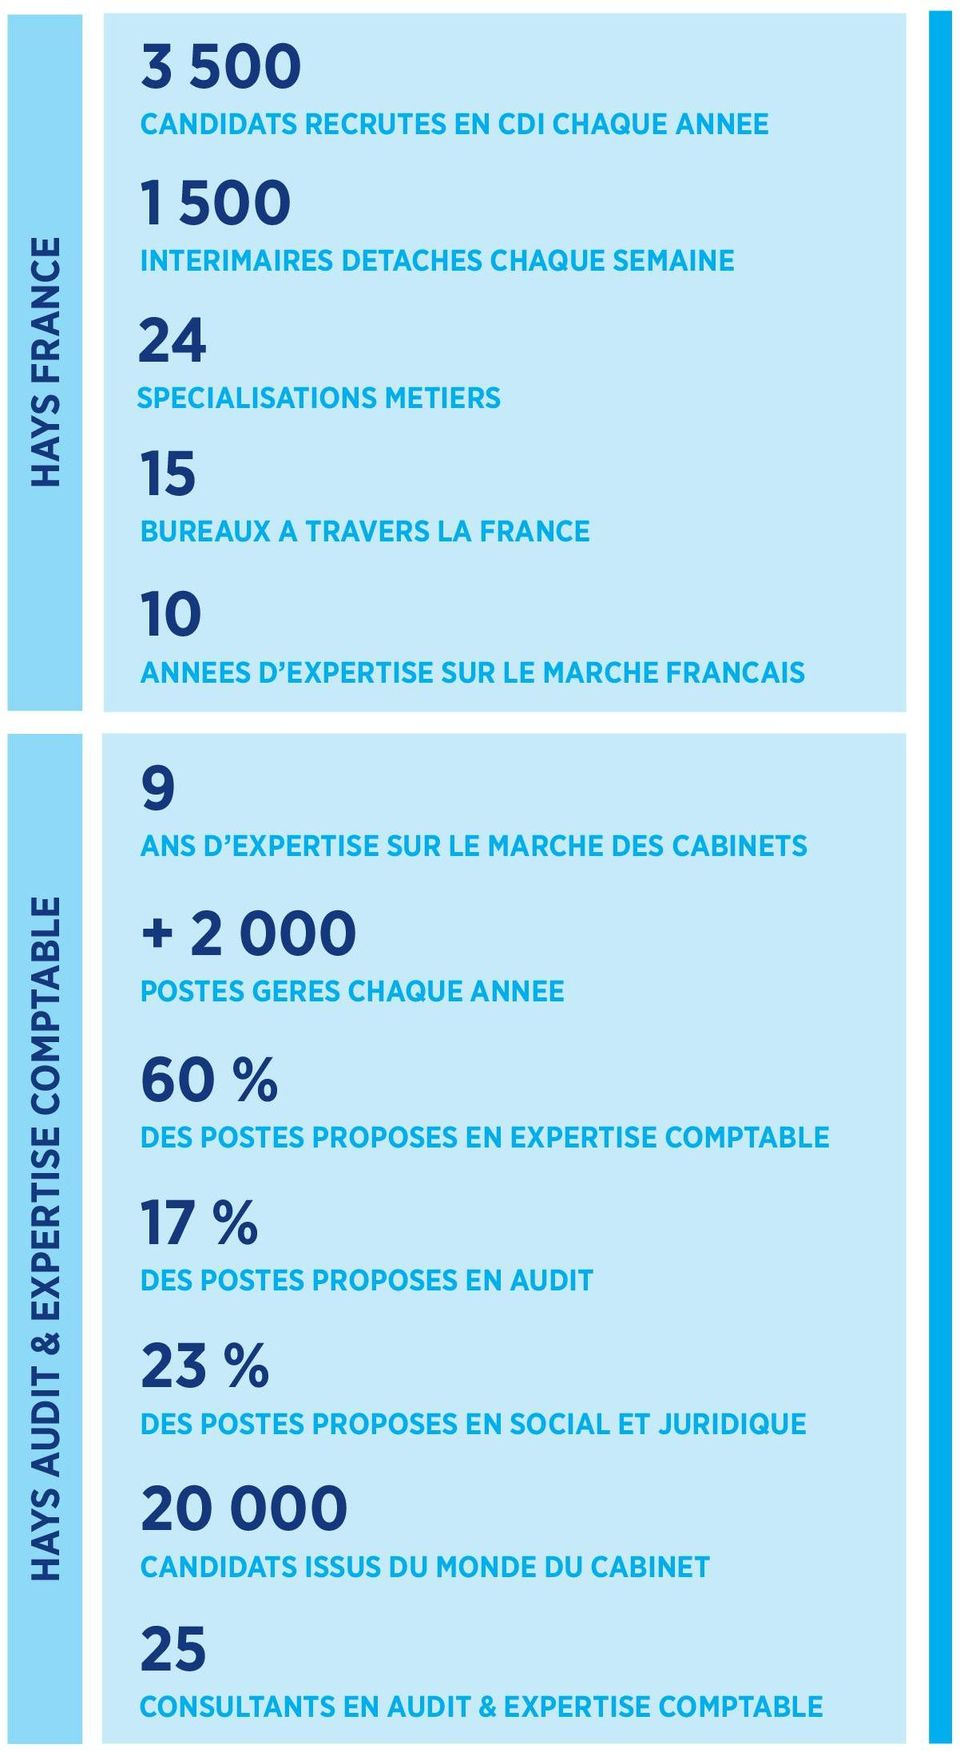 EXPERTISE COMPTABLE + 2 000 POSTES GERES CHAQUE ANNEE 60 % DES POSTES PROPOSES EN EXPERTISE COMPTABLE 17 % DES POSTES PROPOSES EN